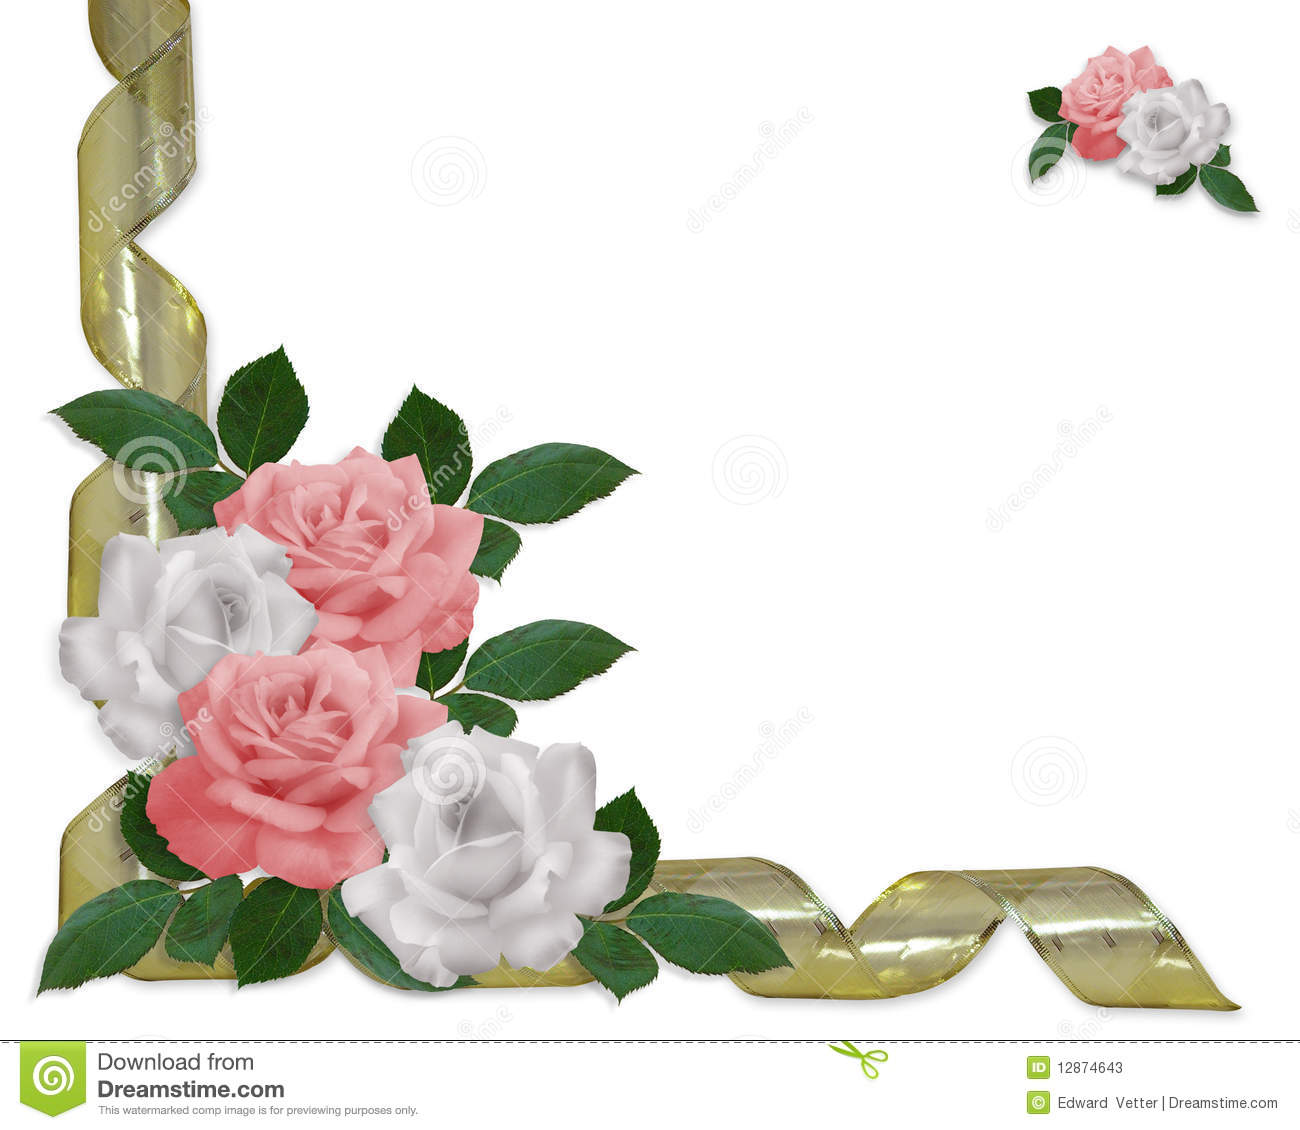 ... wedding invitation background, border or frame with gold ribbons, copy